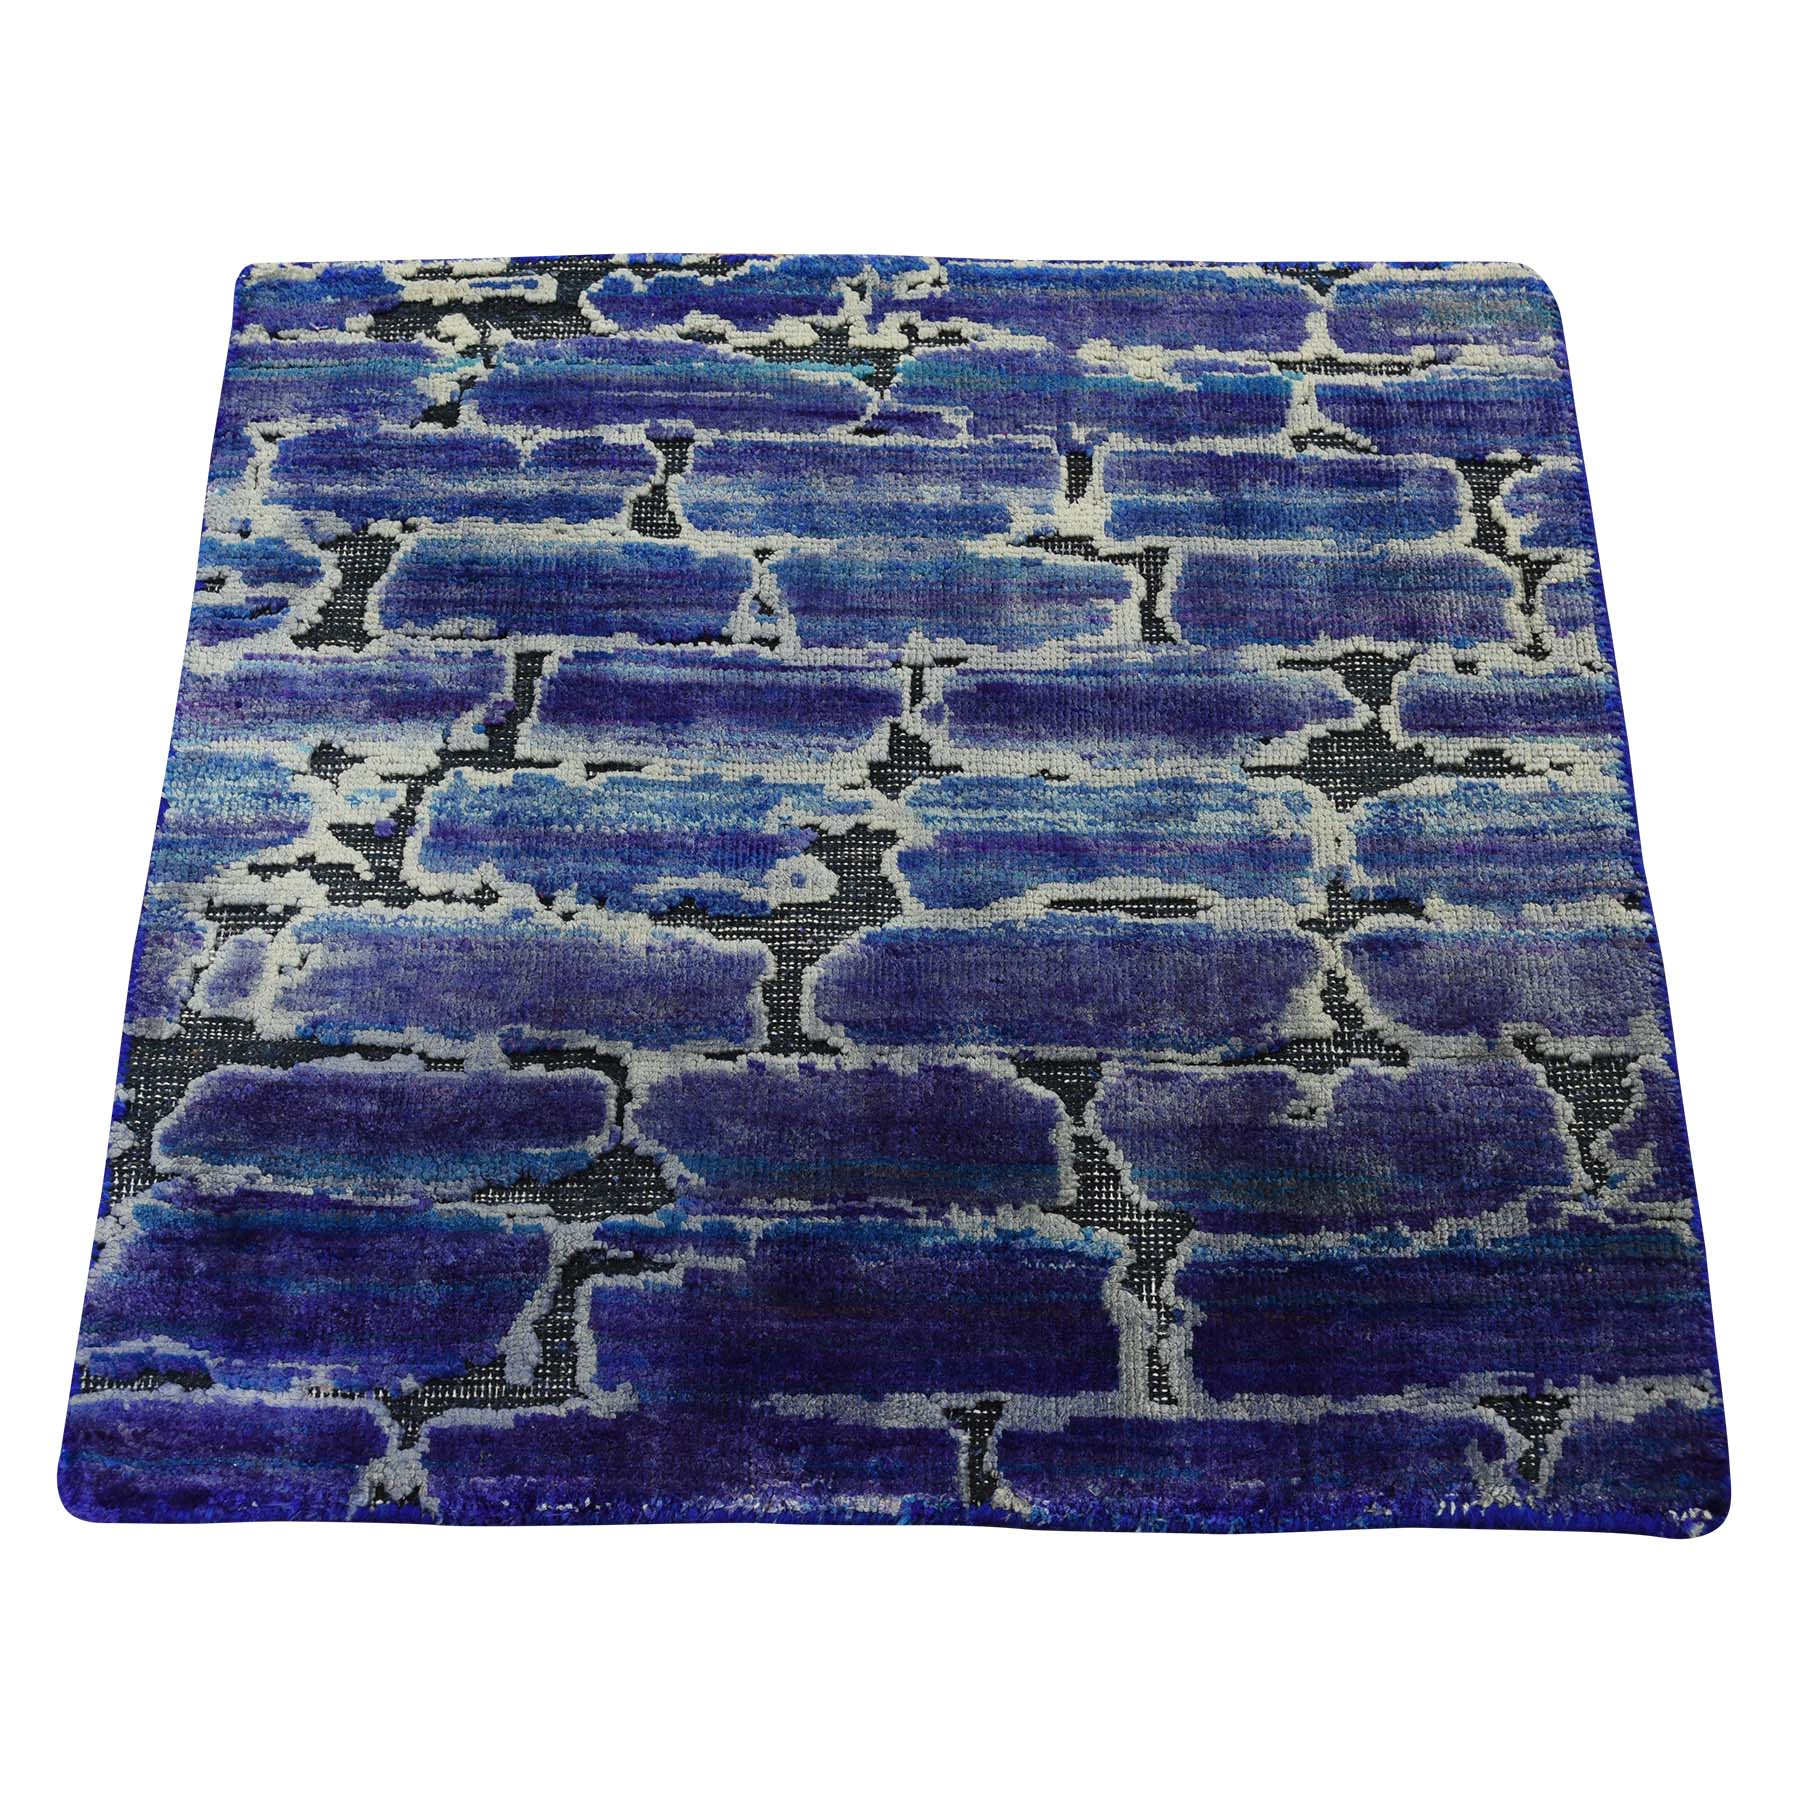 2'X2' Diminishing Bricks Sari Silk With Textured Wool Hand-Knotted Oriental Rug moadc6d8